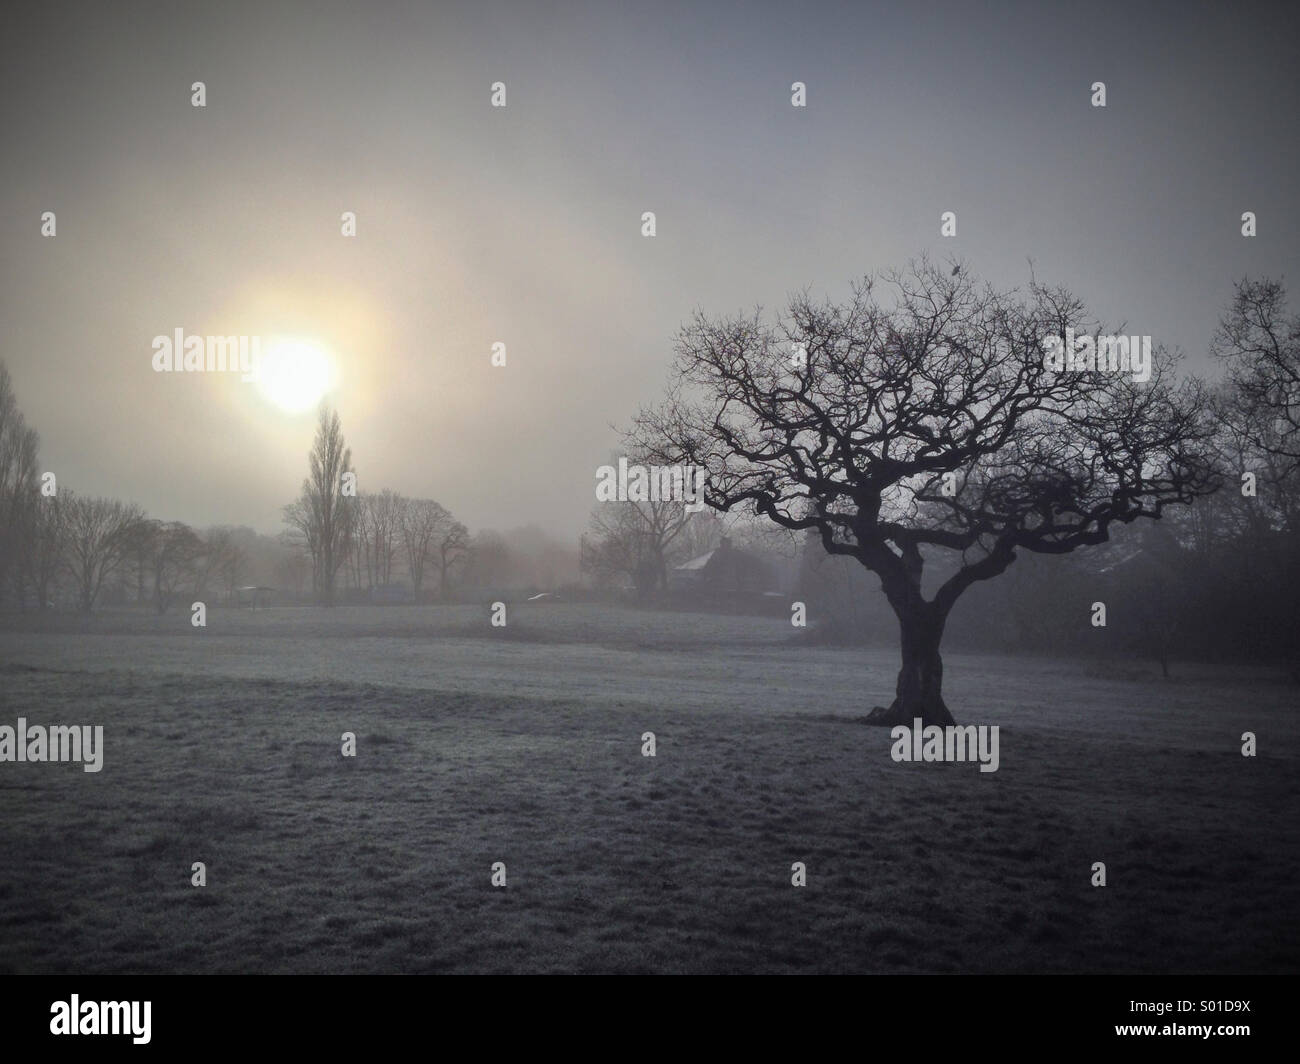 Misty morning with the sun burning off the fog and a line tree against the sky - Stock Image